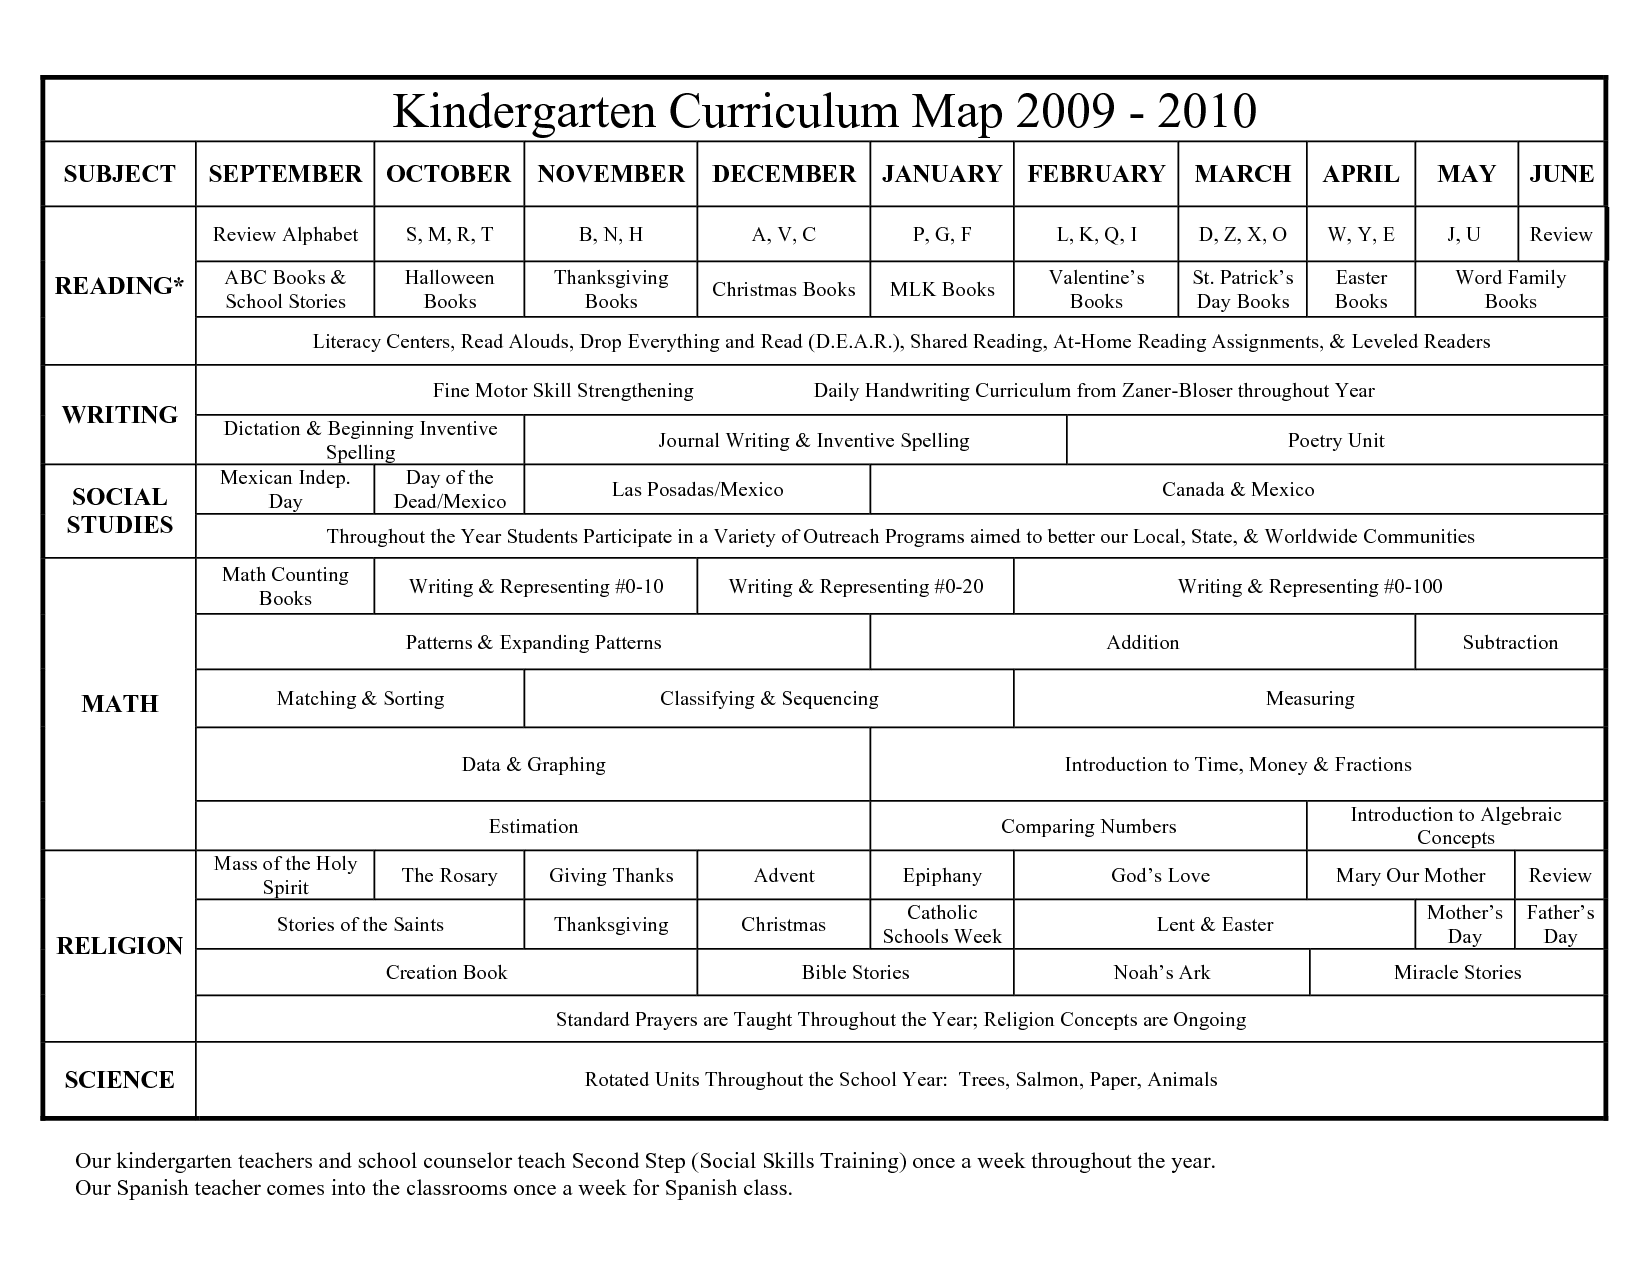 preschool curriculum map template - kindergarten curriculum map google search school